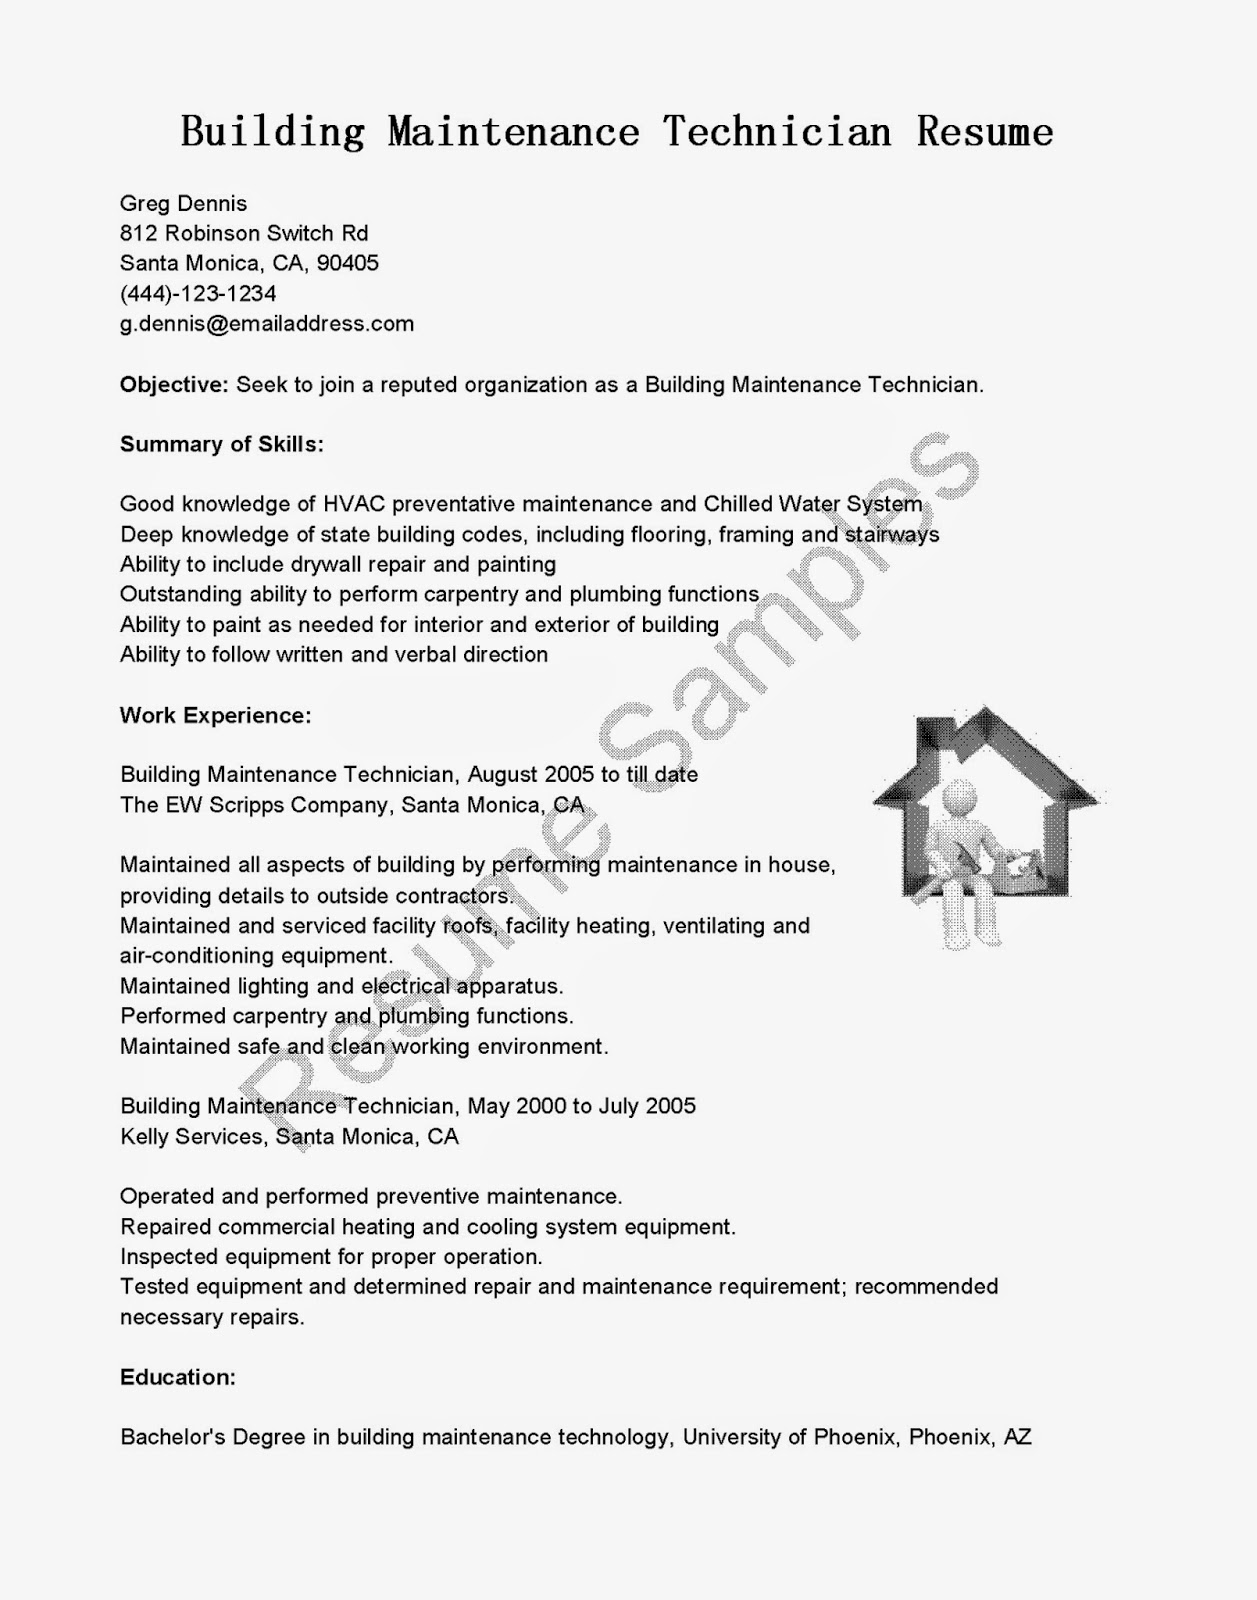 resume samples  building maintenance technician resume sample